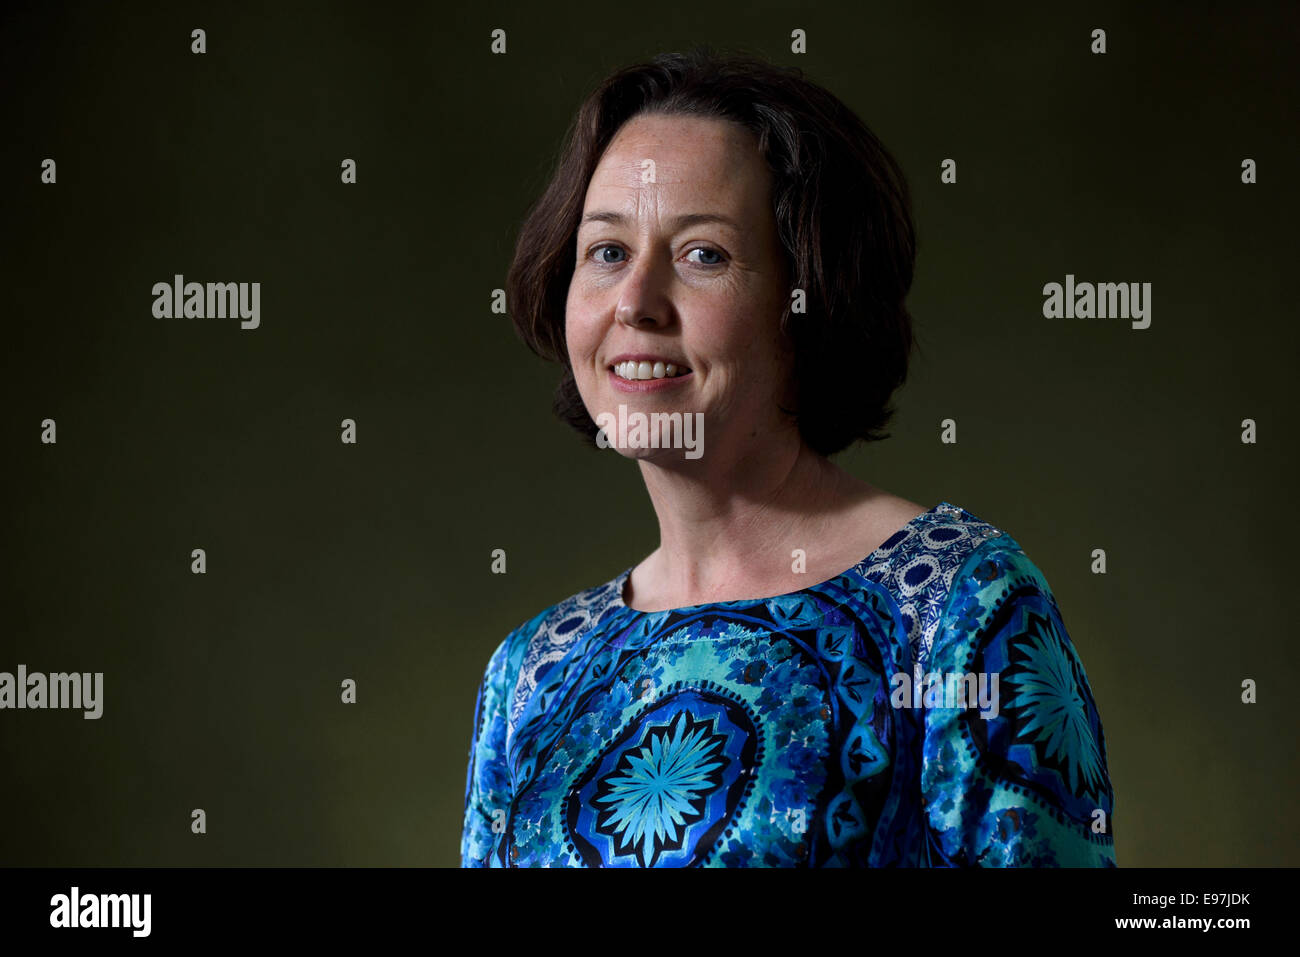 Irish author, writer, novelist and journalist Audrey Magee appears at the Edinburgh International Book Festival. - Stock Image